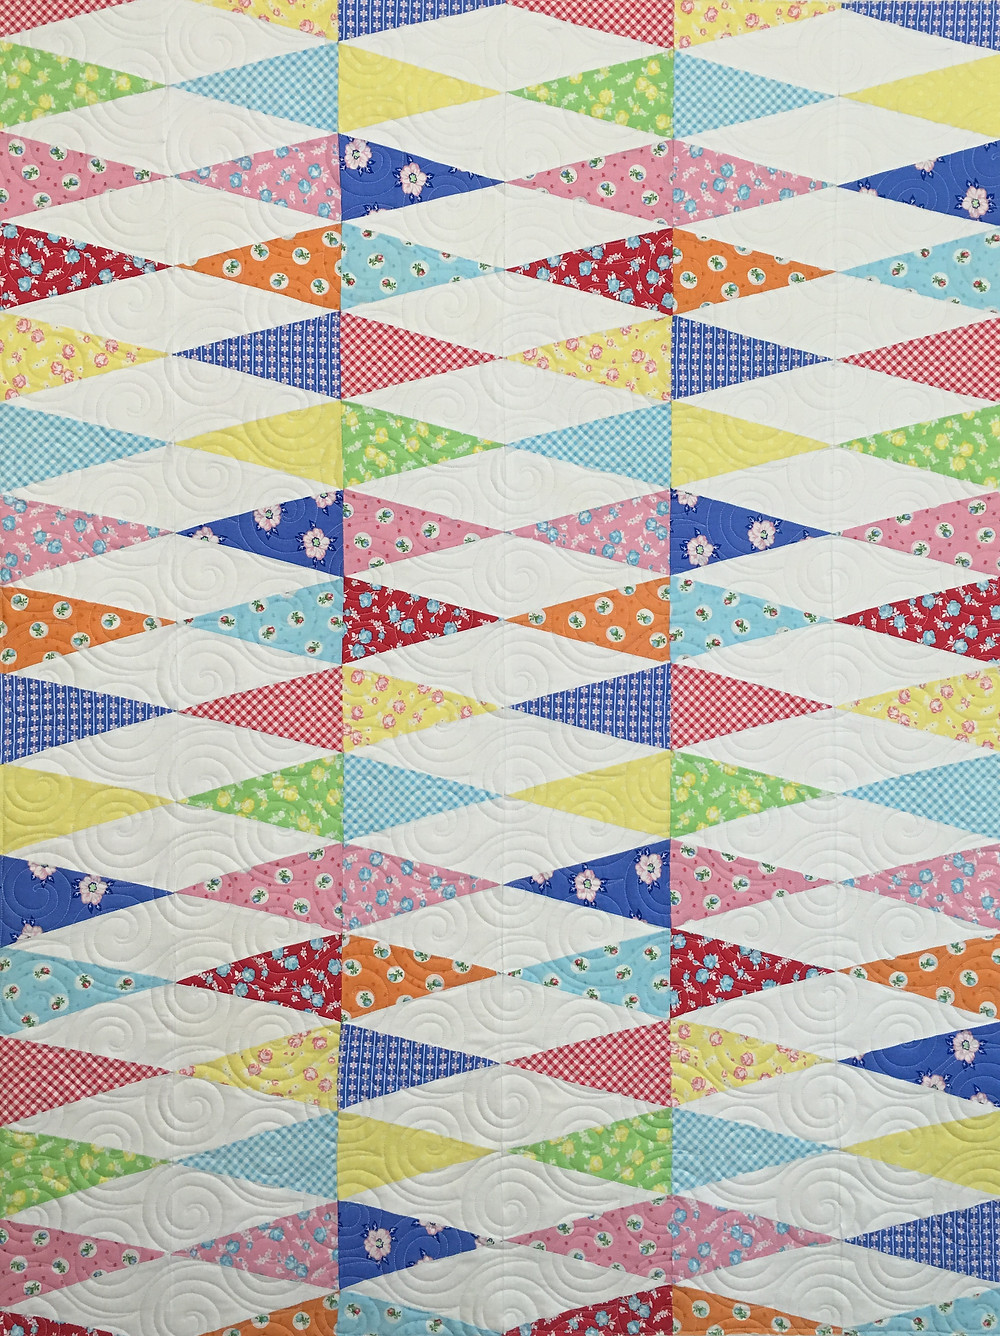 Melissa Kite Tails Quilt in pretty pastels